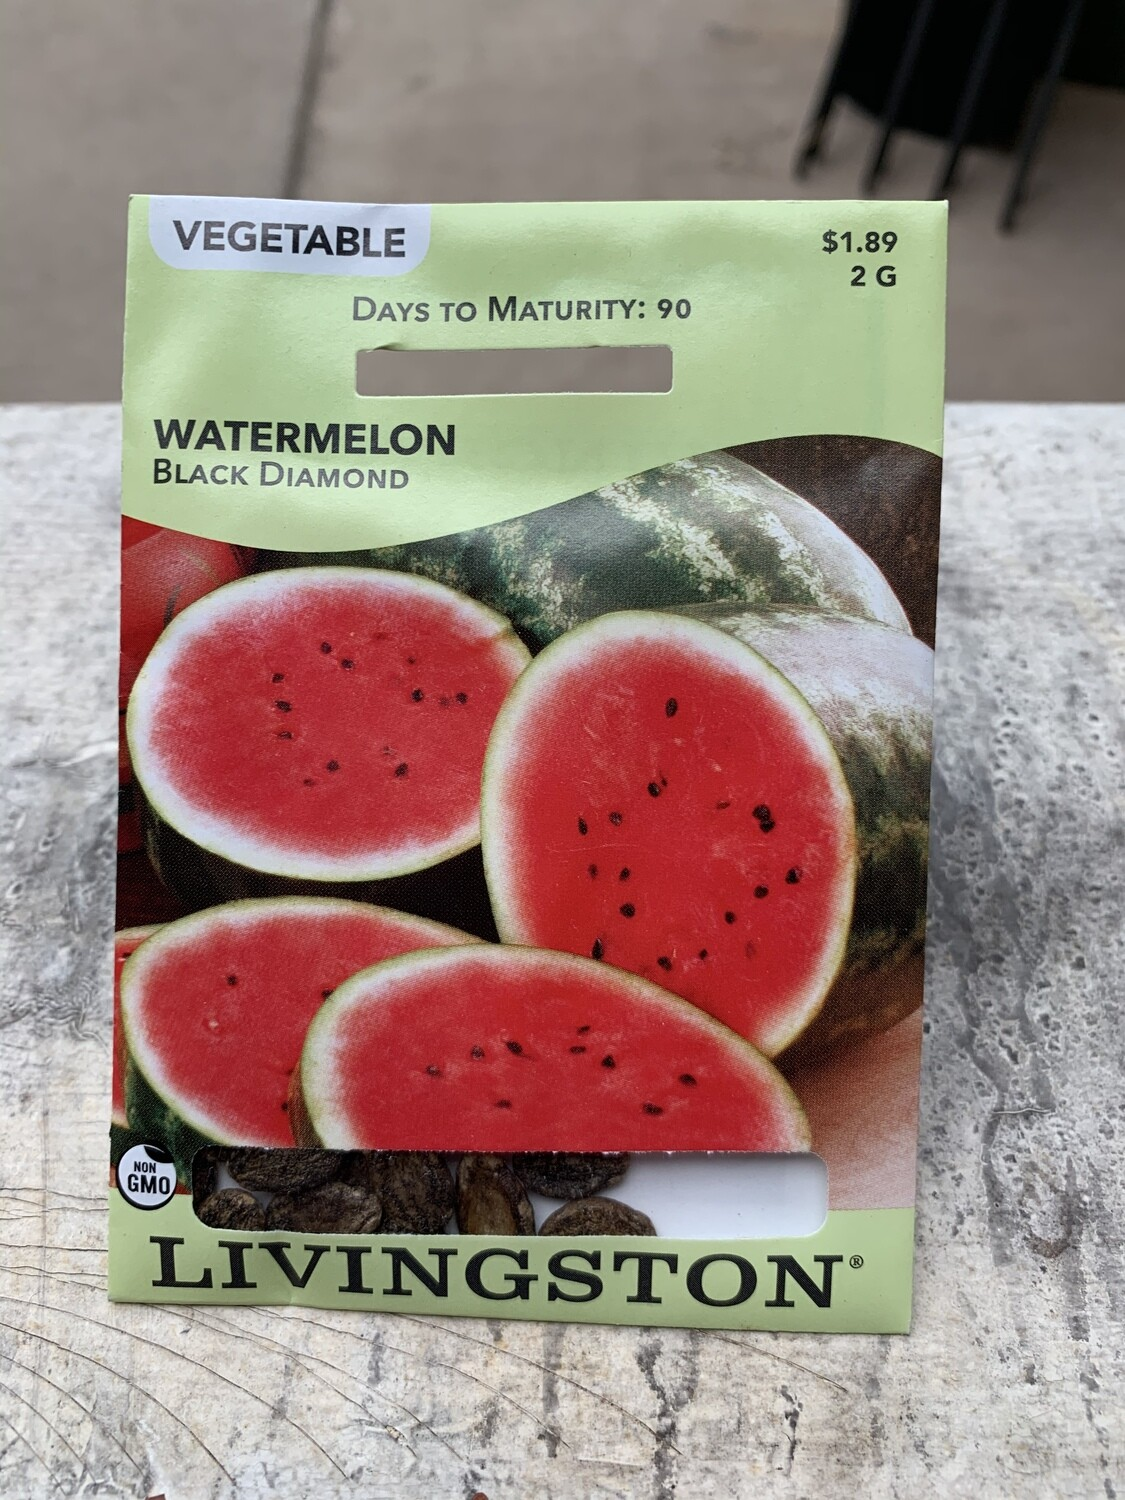 Watermelon Black Diamond (Seed) $1.89